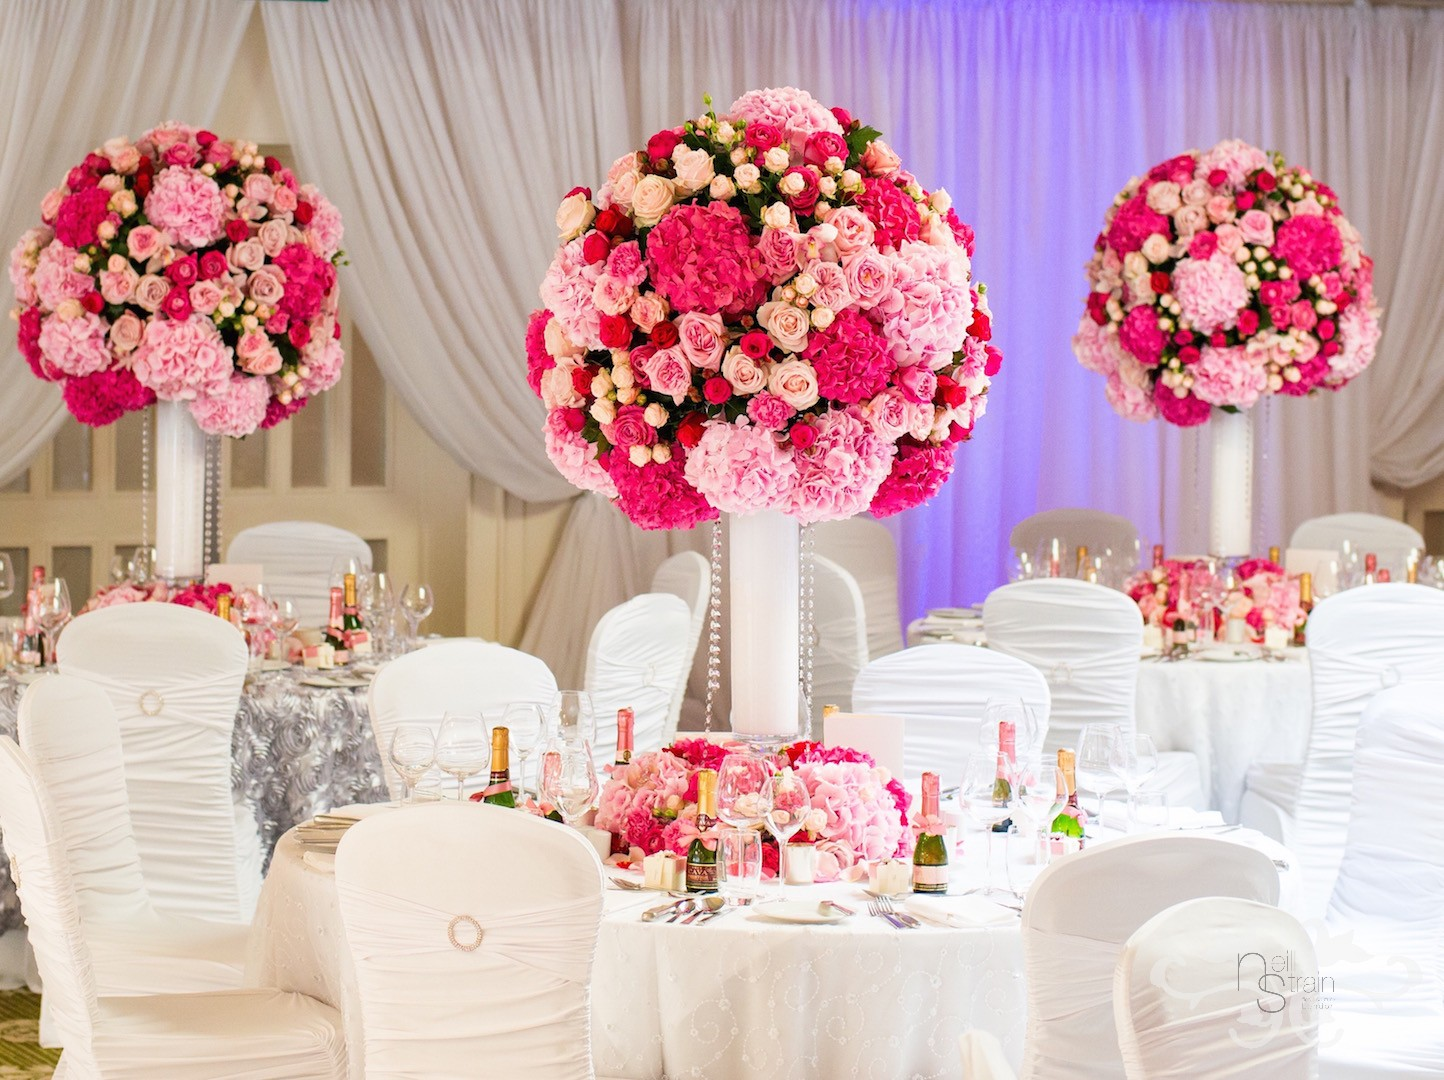 Elegance and opulence in a fabulously flowery summer setting